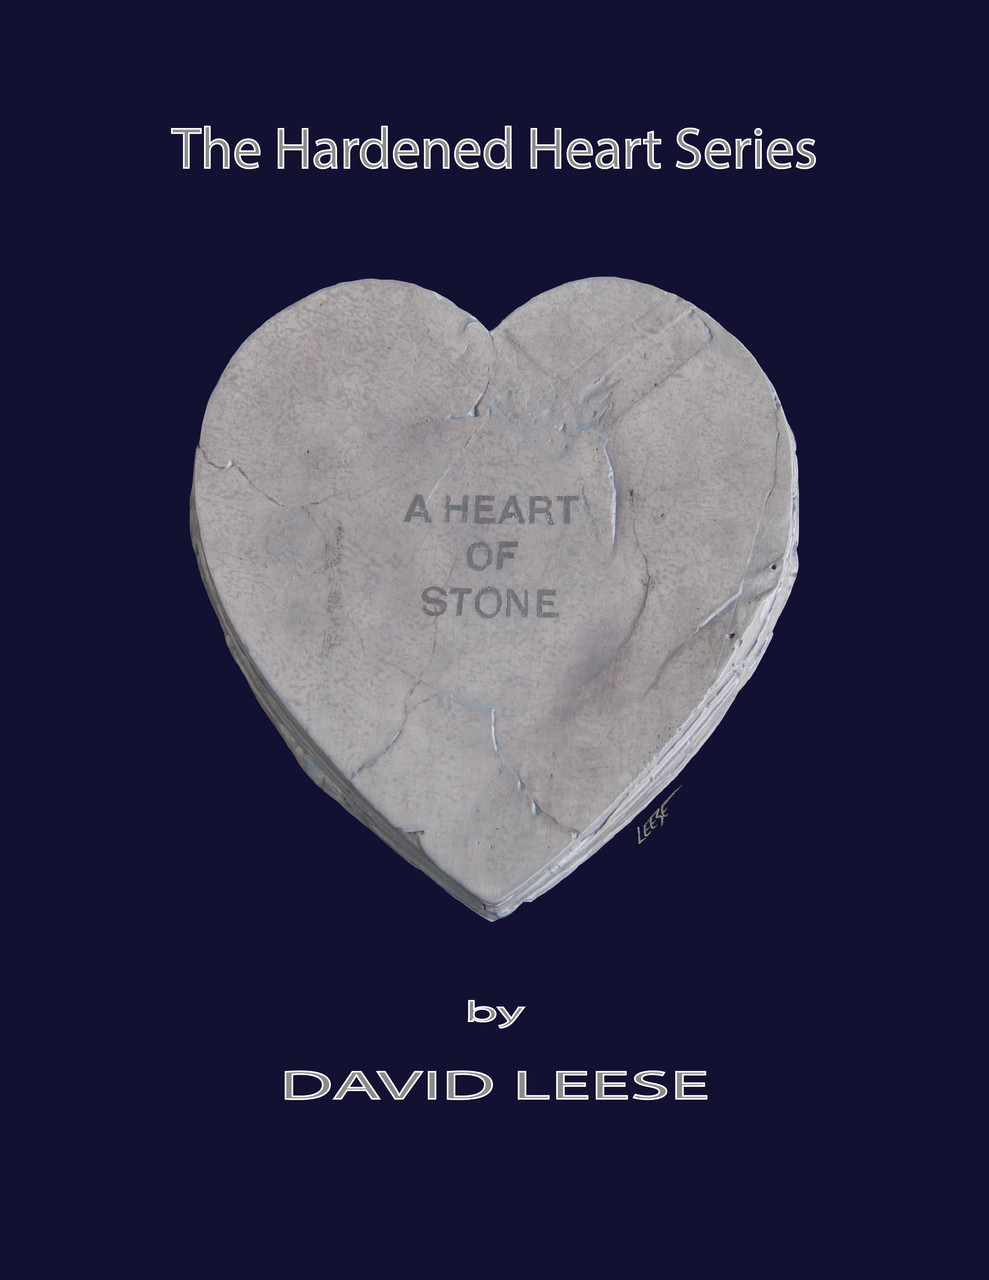 A Heart of Stone on Navy (various sizes)